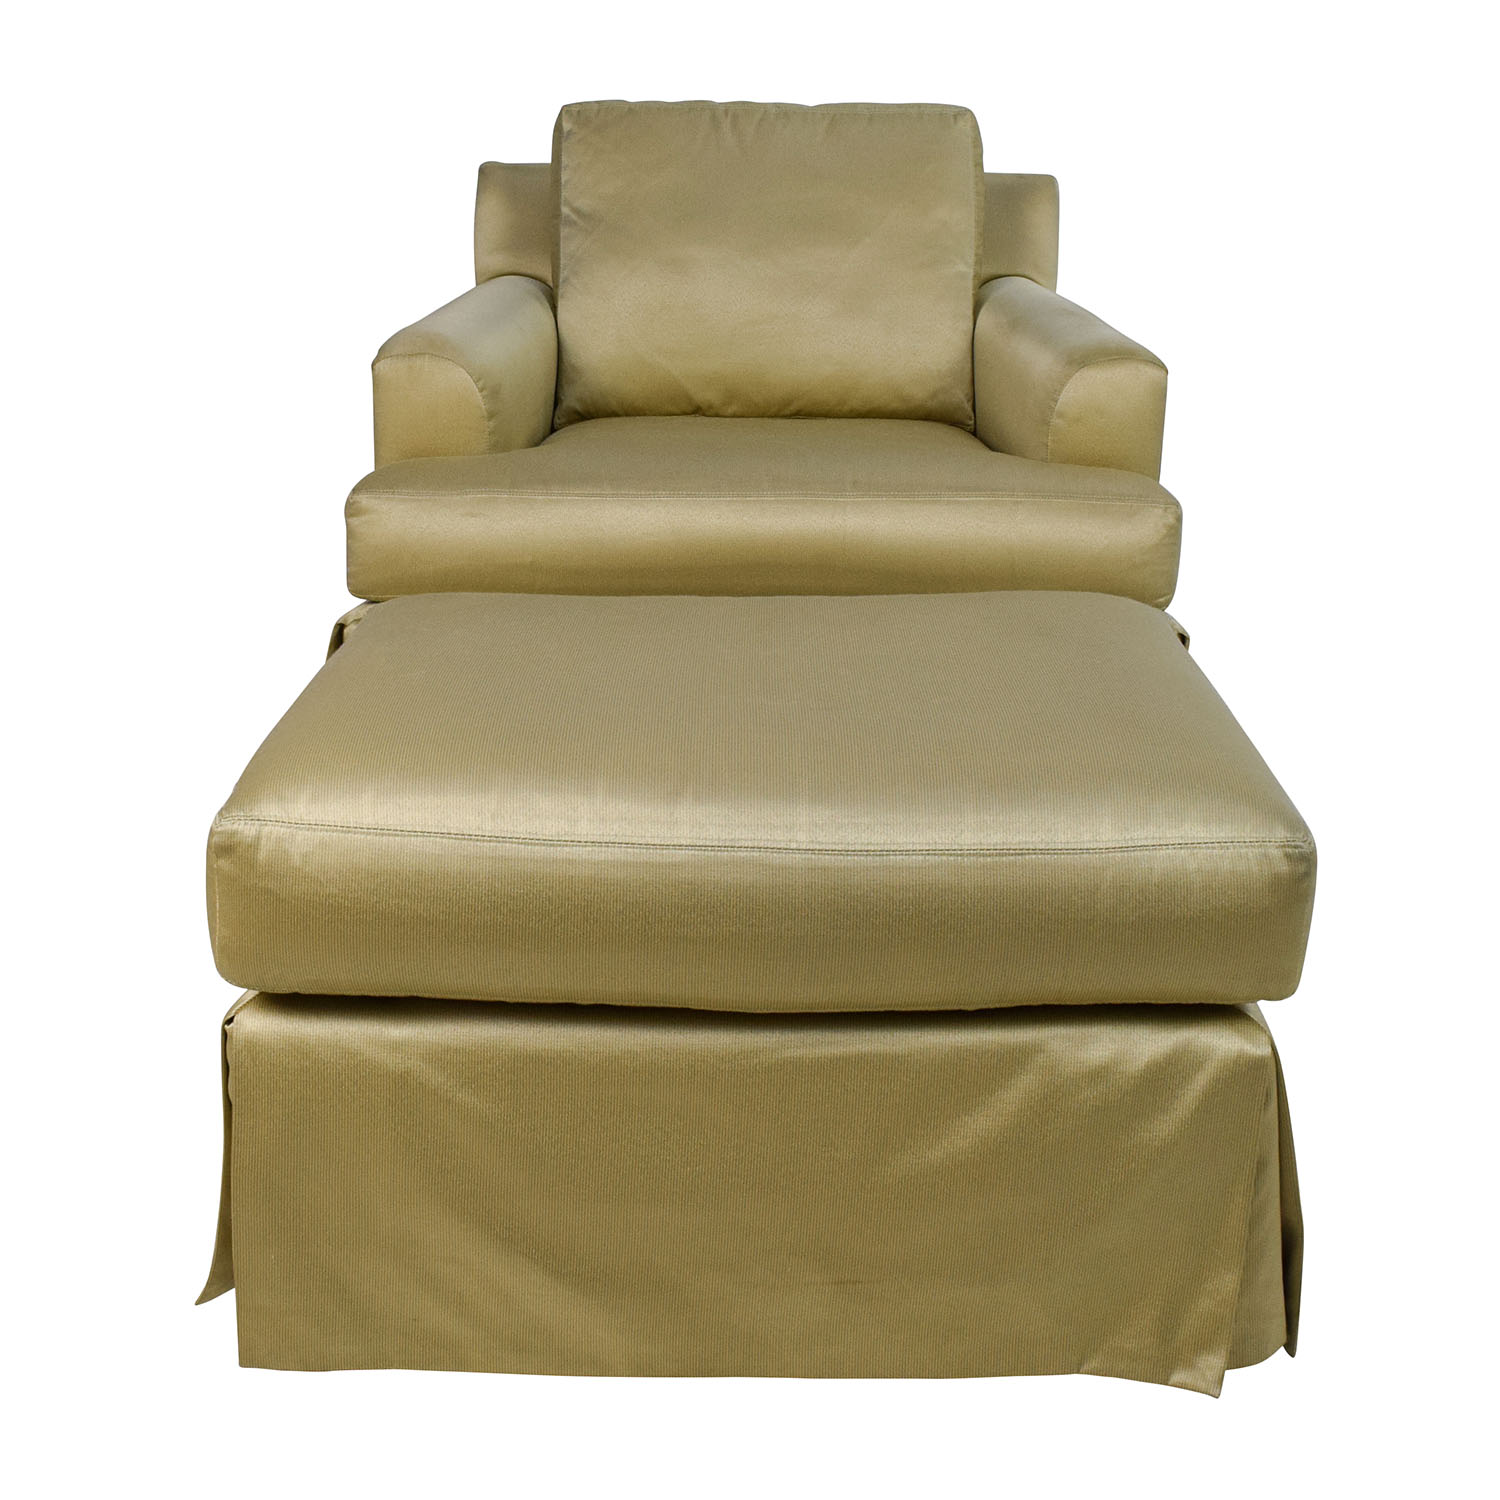 Abc Carpet And Home Gold Sofa Chair With Matching Ottoman Online